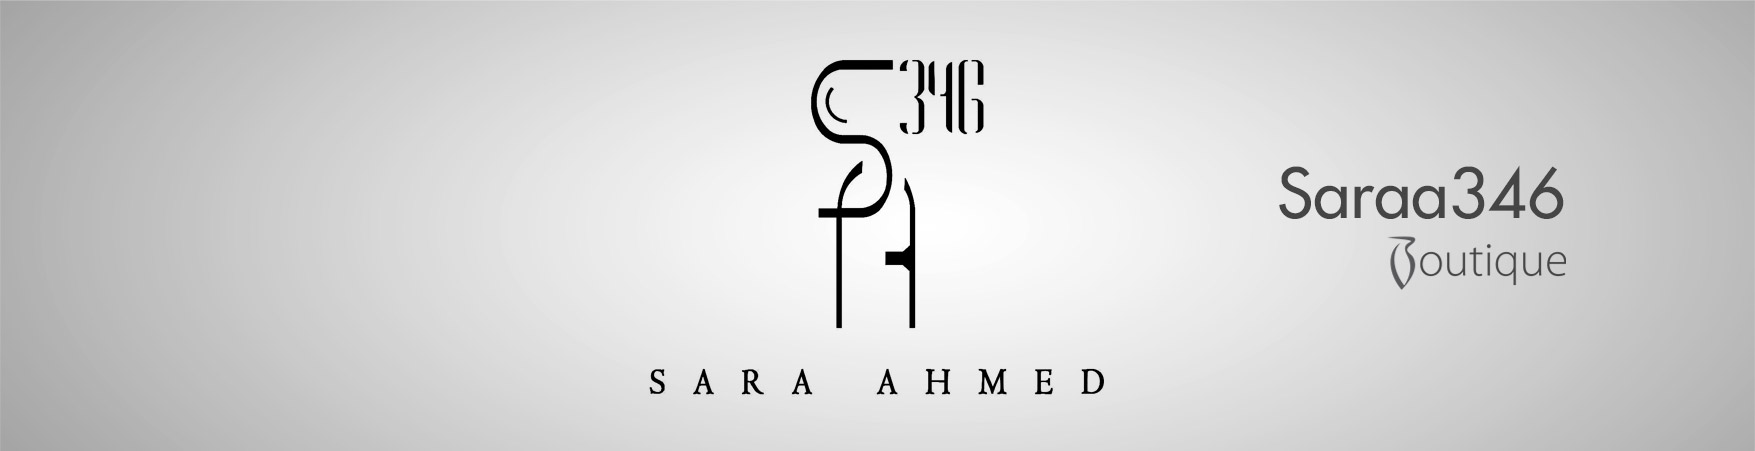 saraa346 boutique